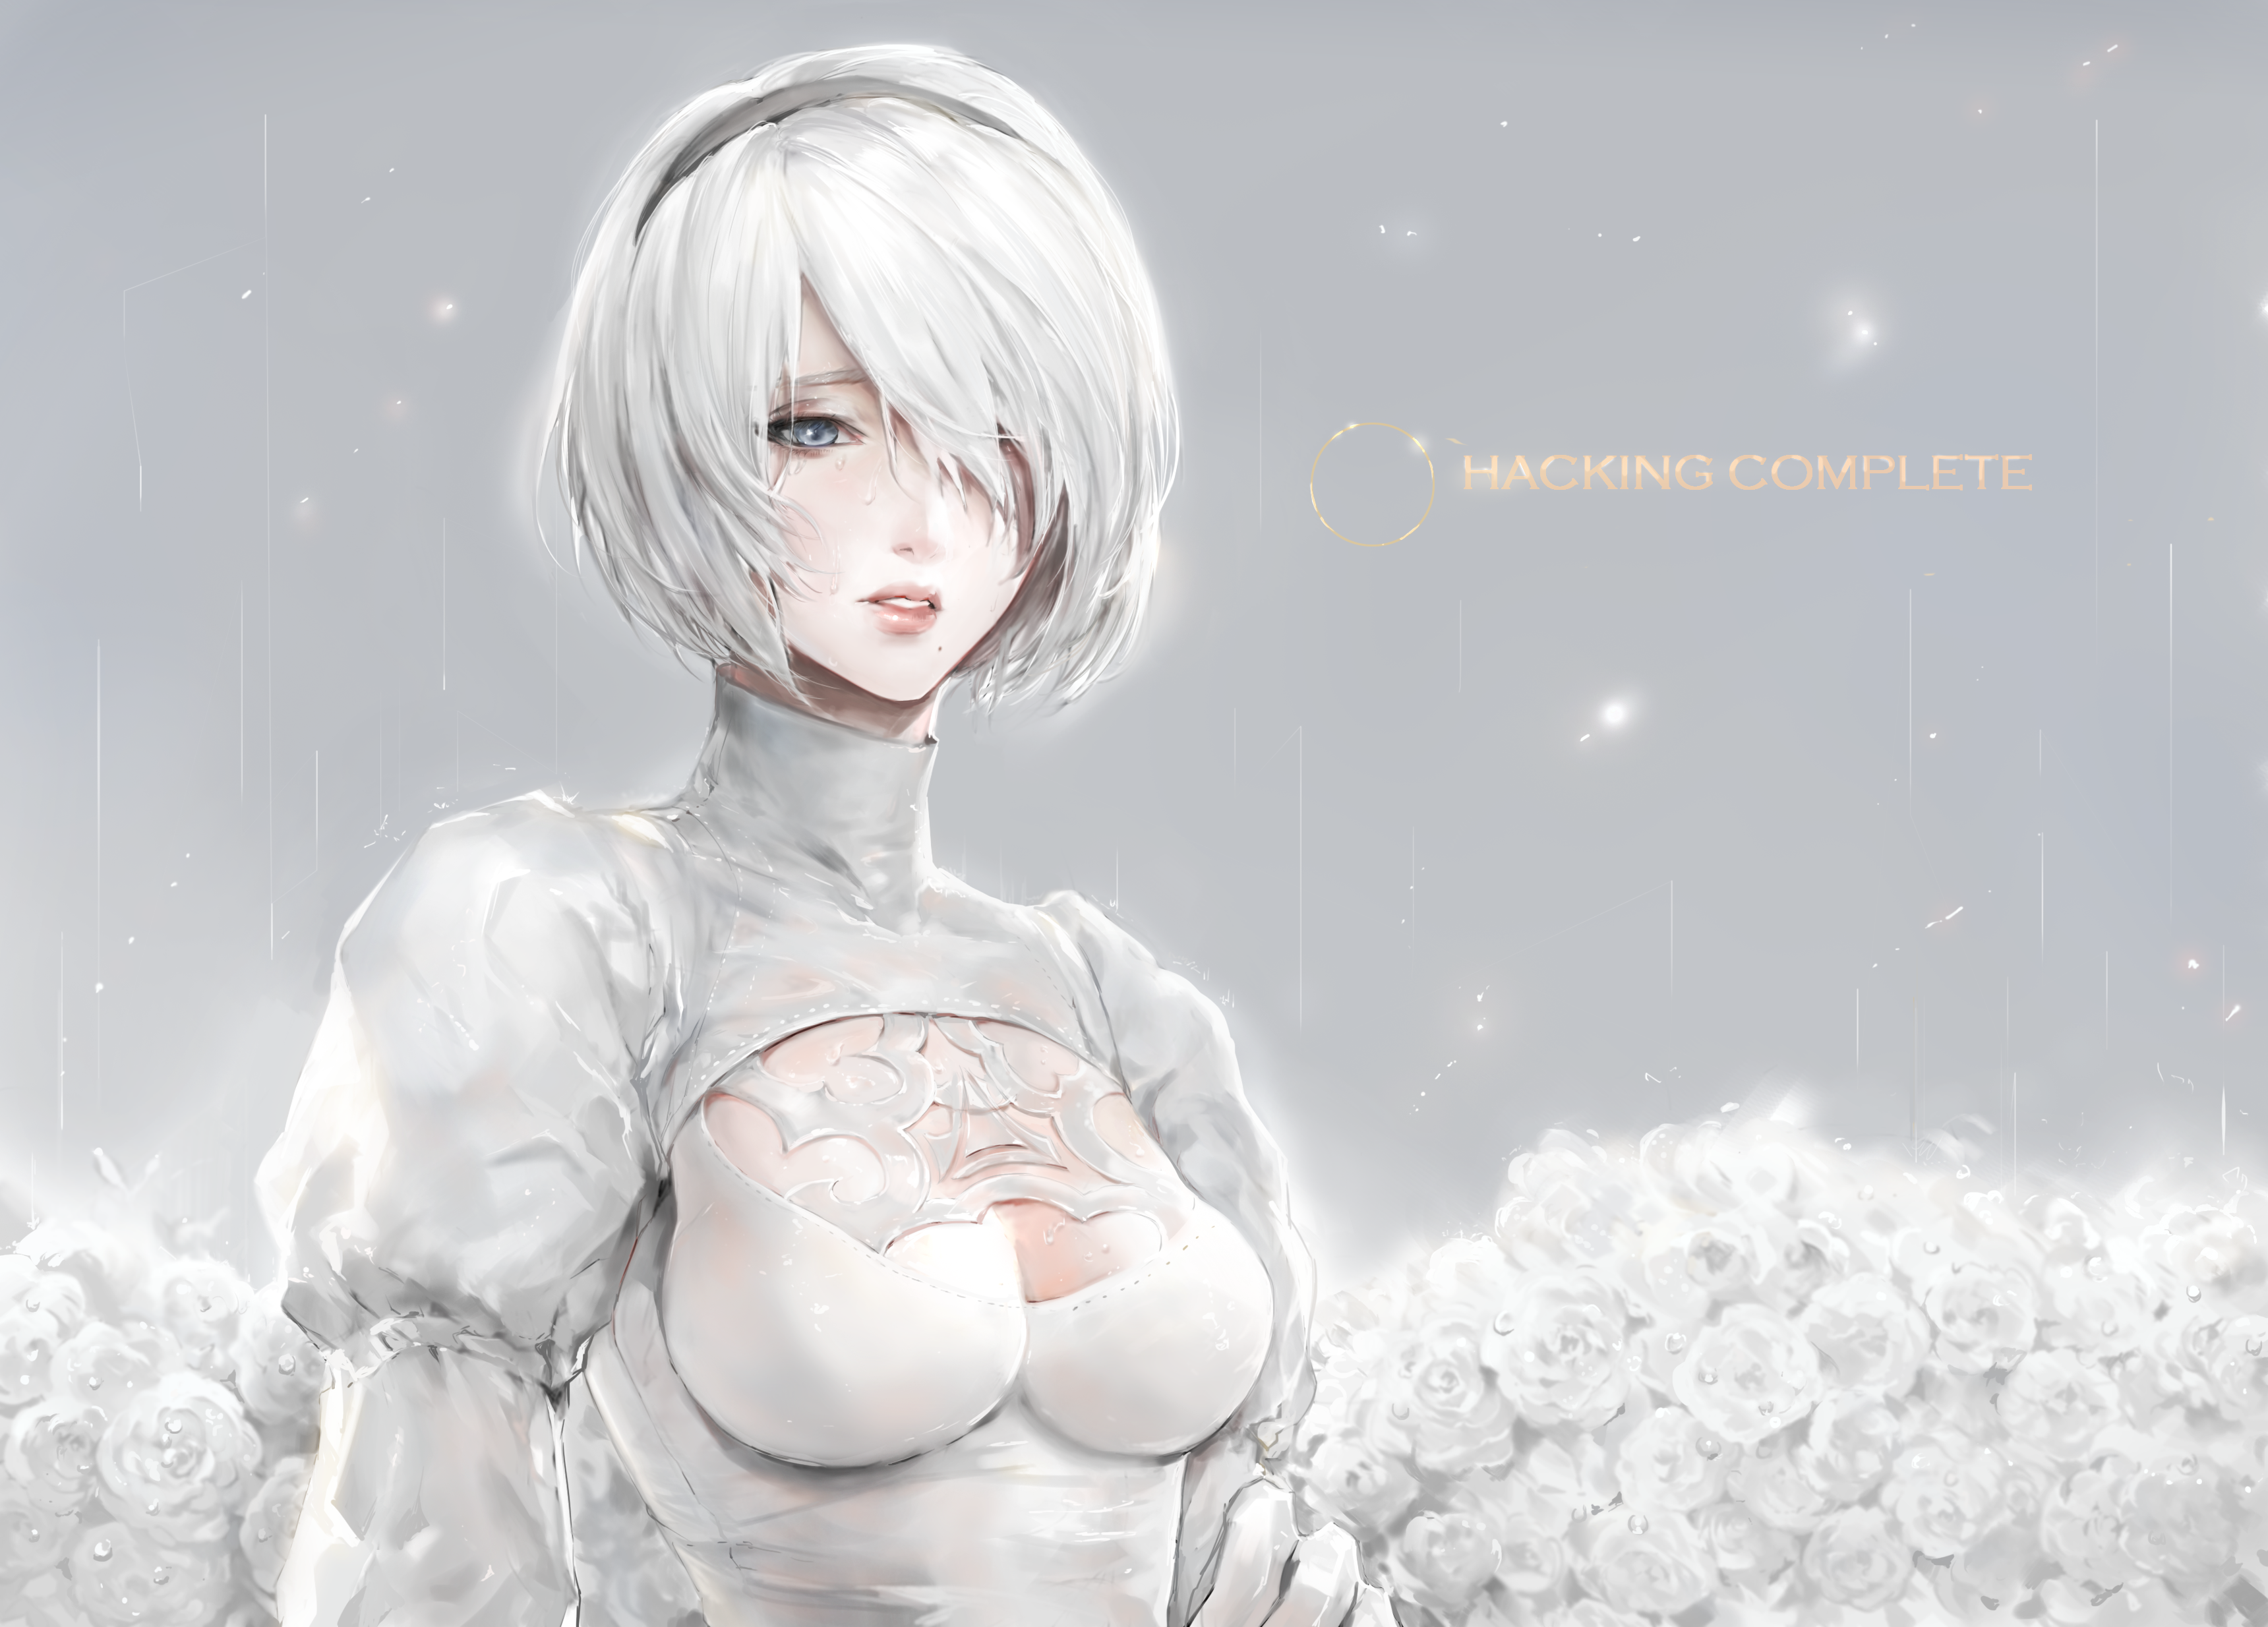 Share you a set of 2B wallpaper Full HD  for free download right here!